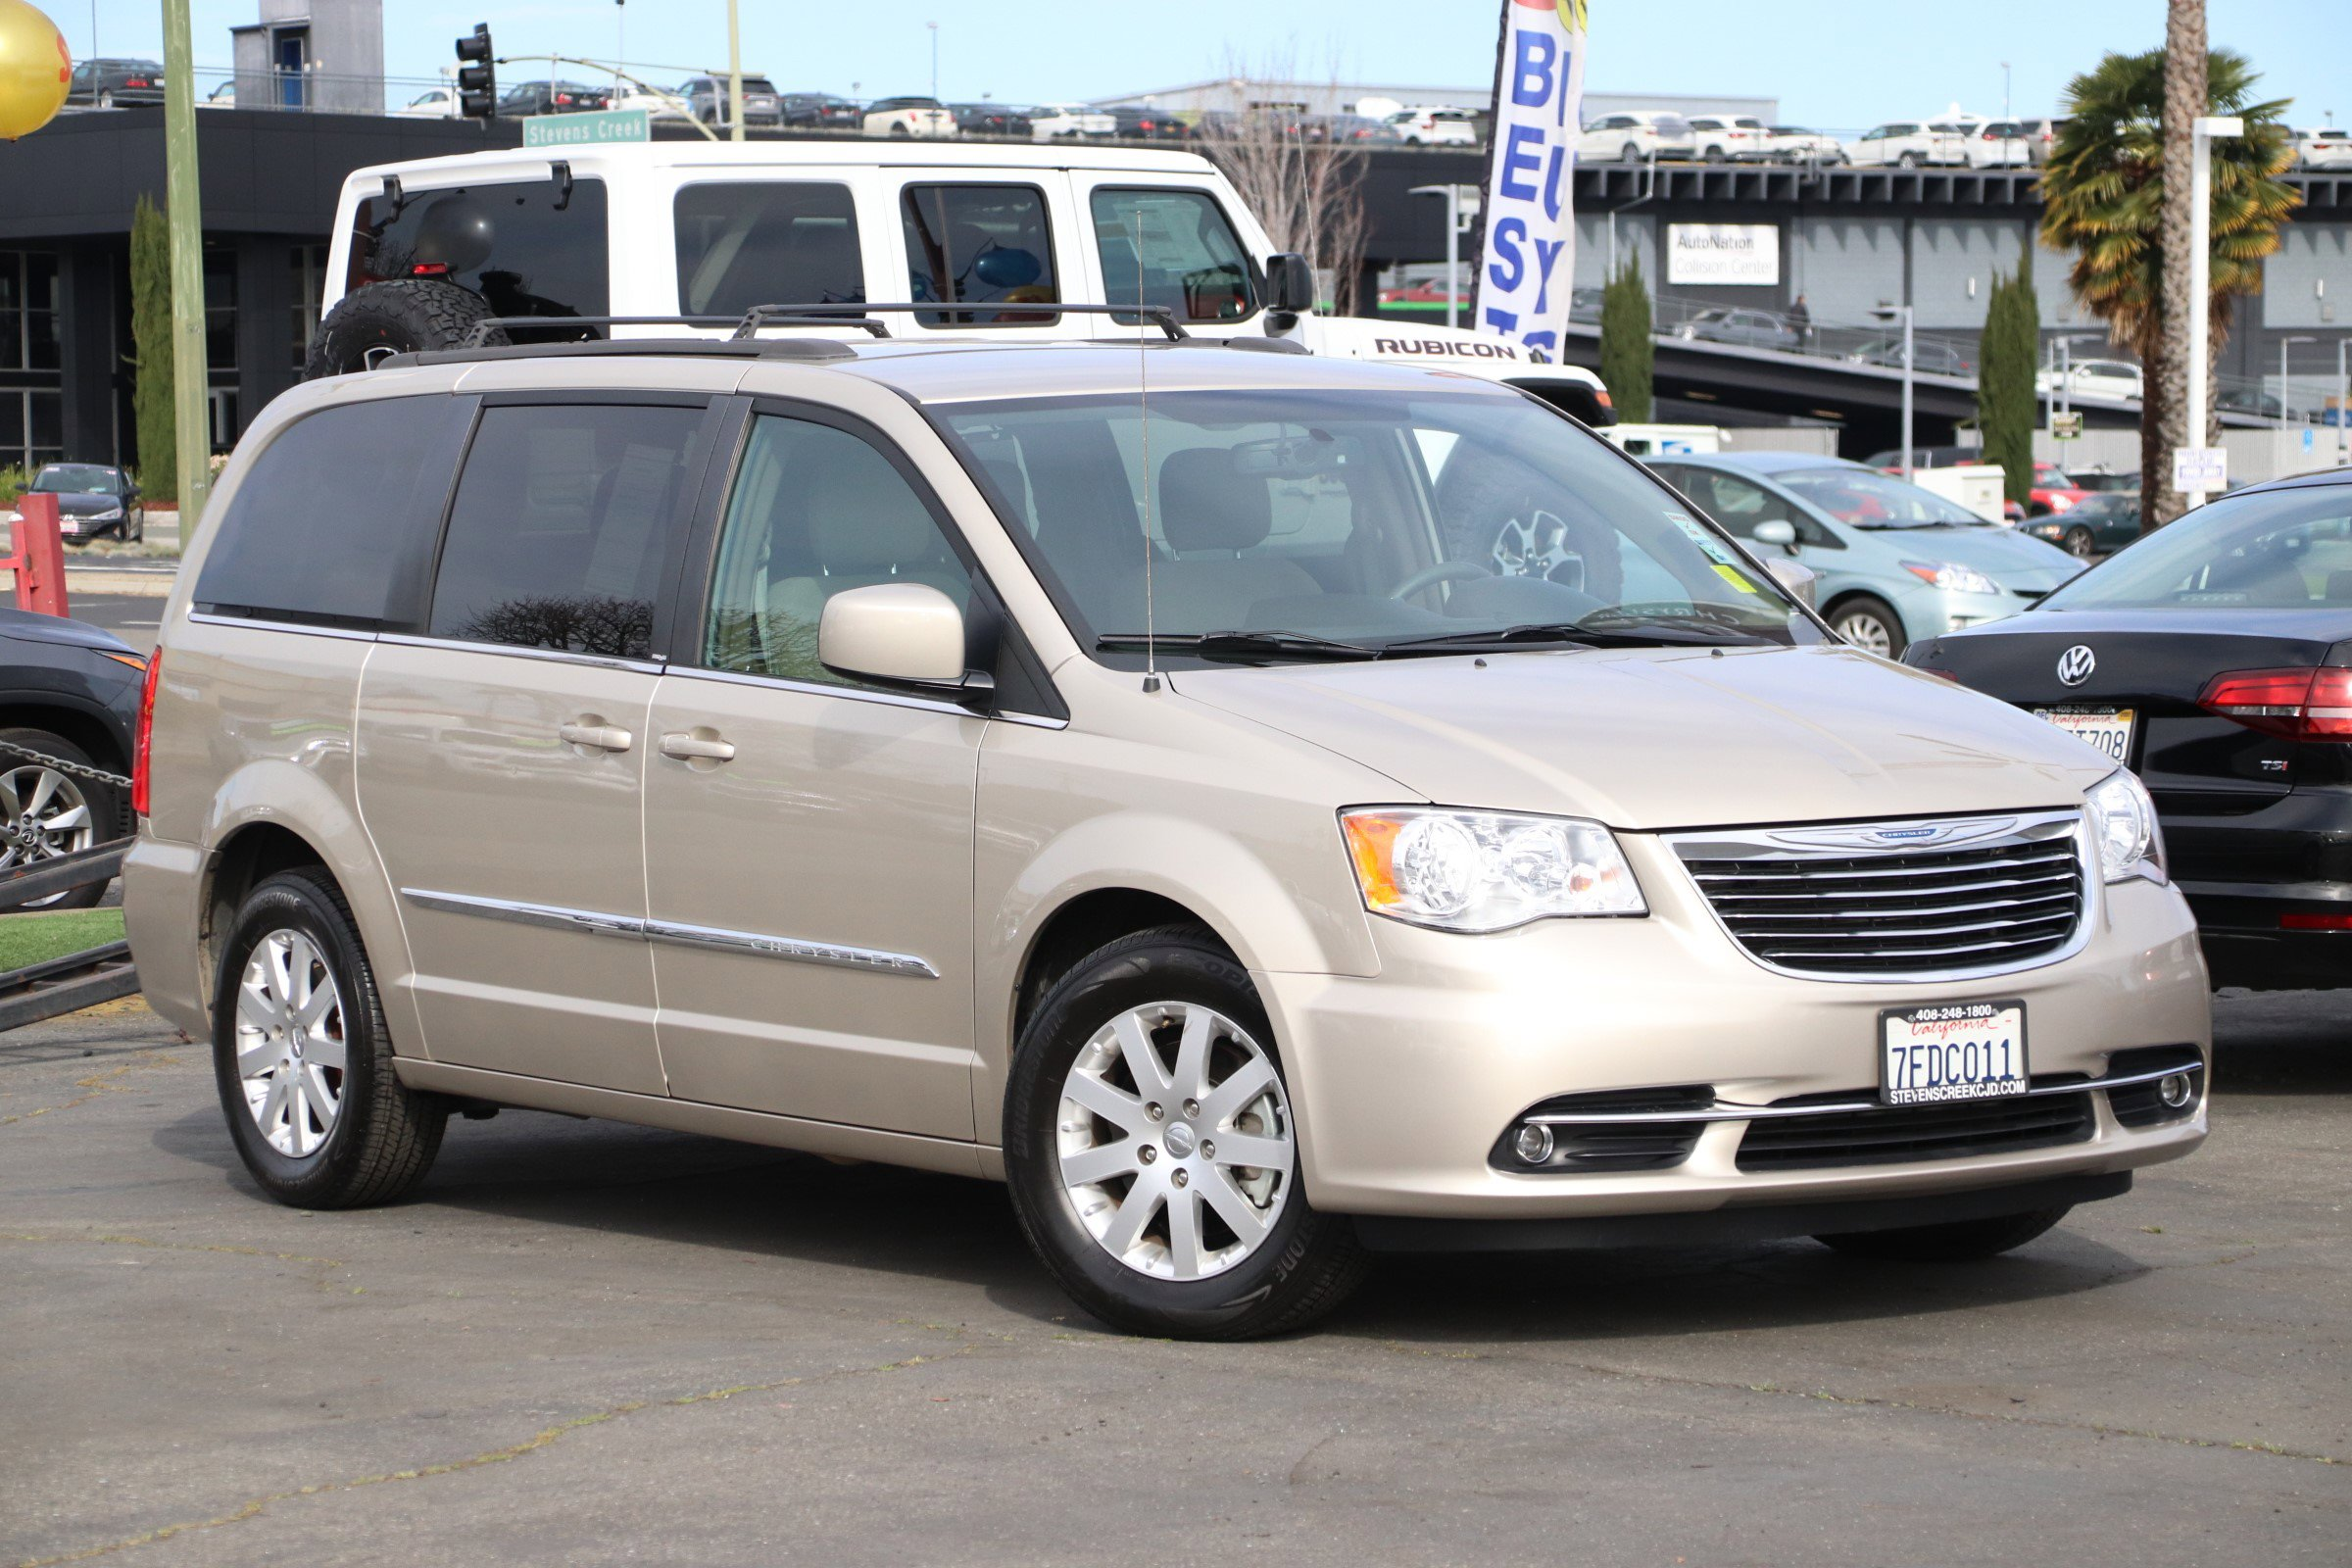 2014 Chrysler Town & Country Touring image